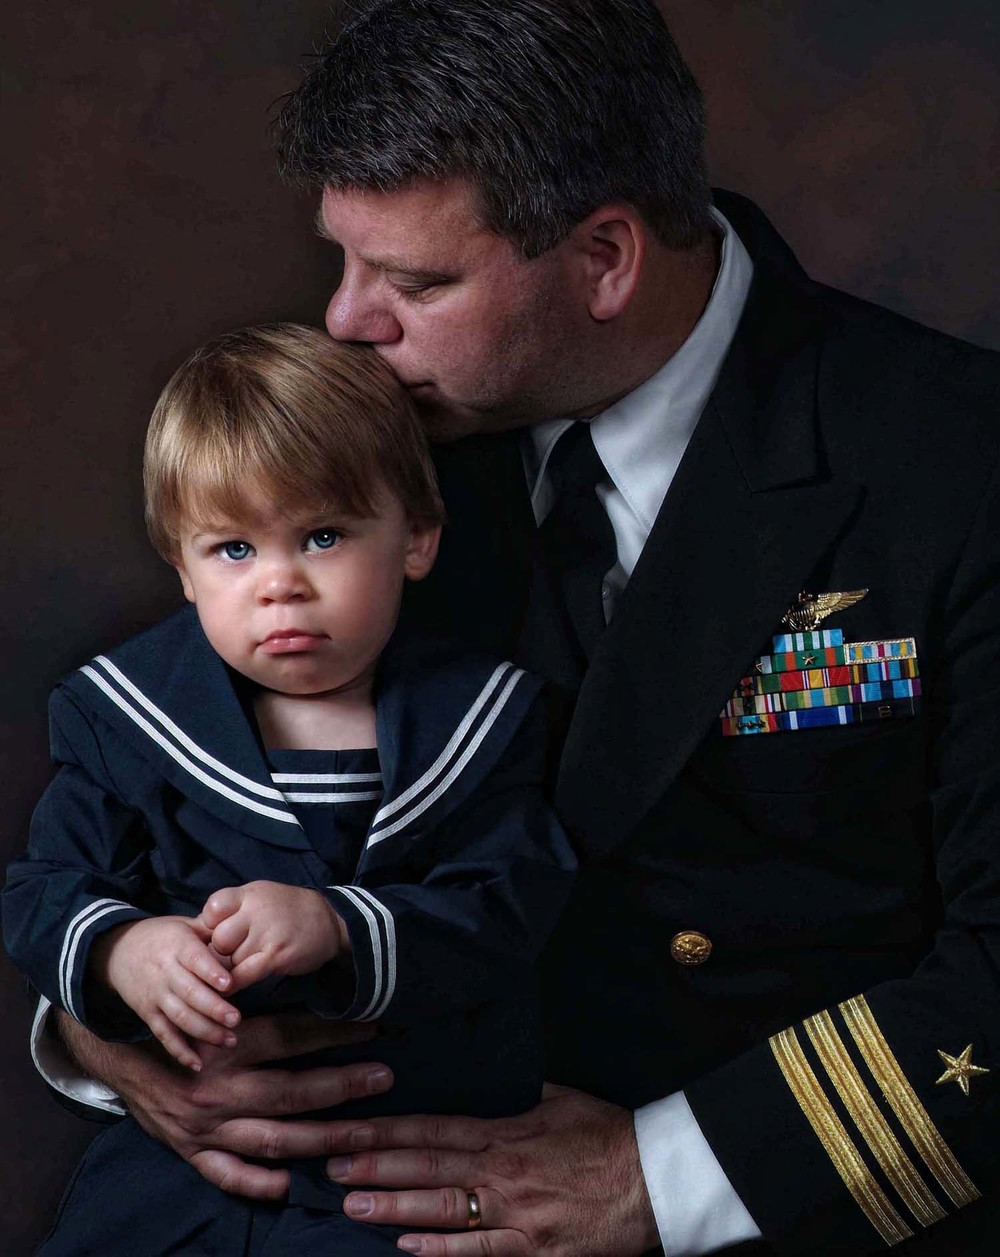 Deborah-Ferro-Father-Son-Military-Portrait-Female.jpg